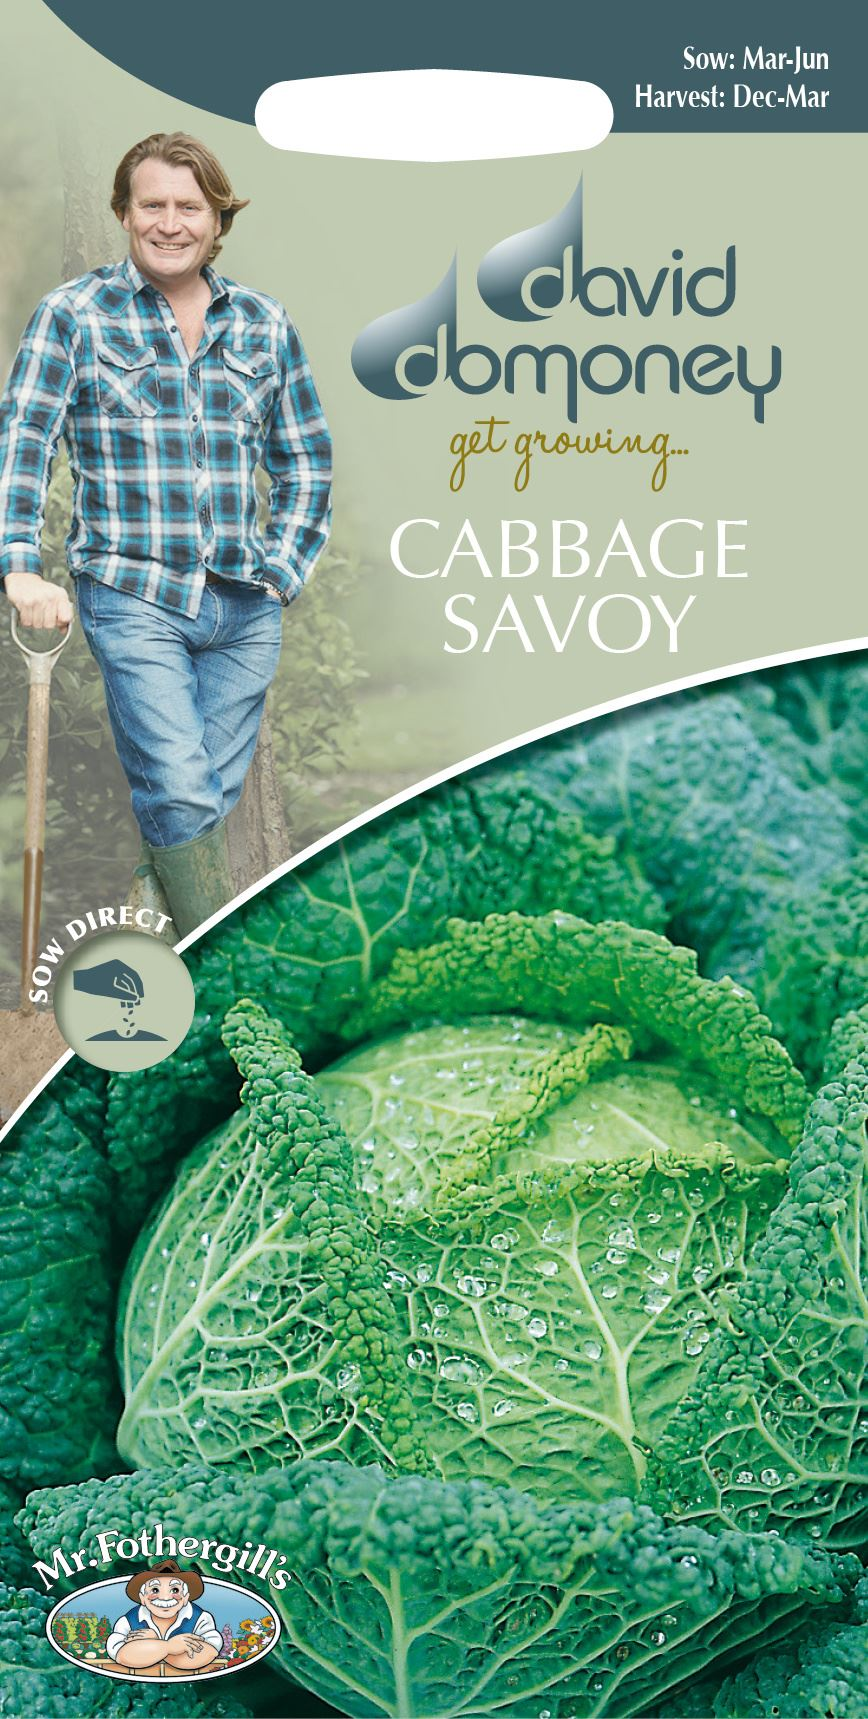 Cabbage - 400 Seeds Ormskirk 1 Johnsons Vegetable Savoy Late